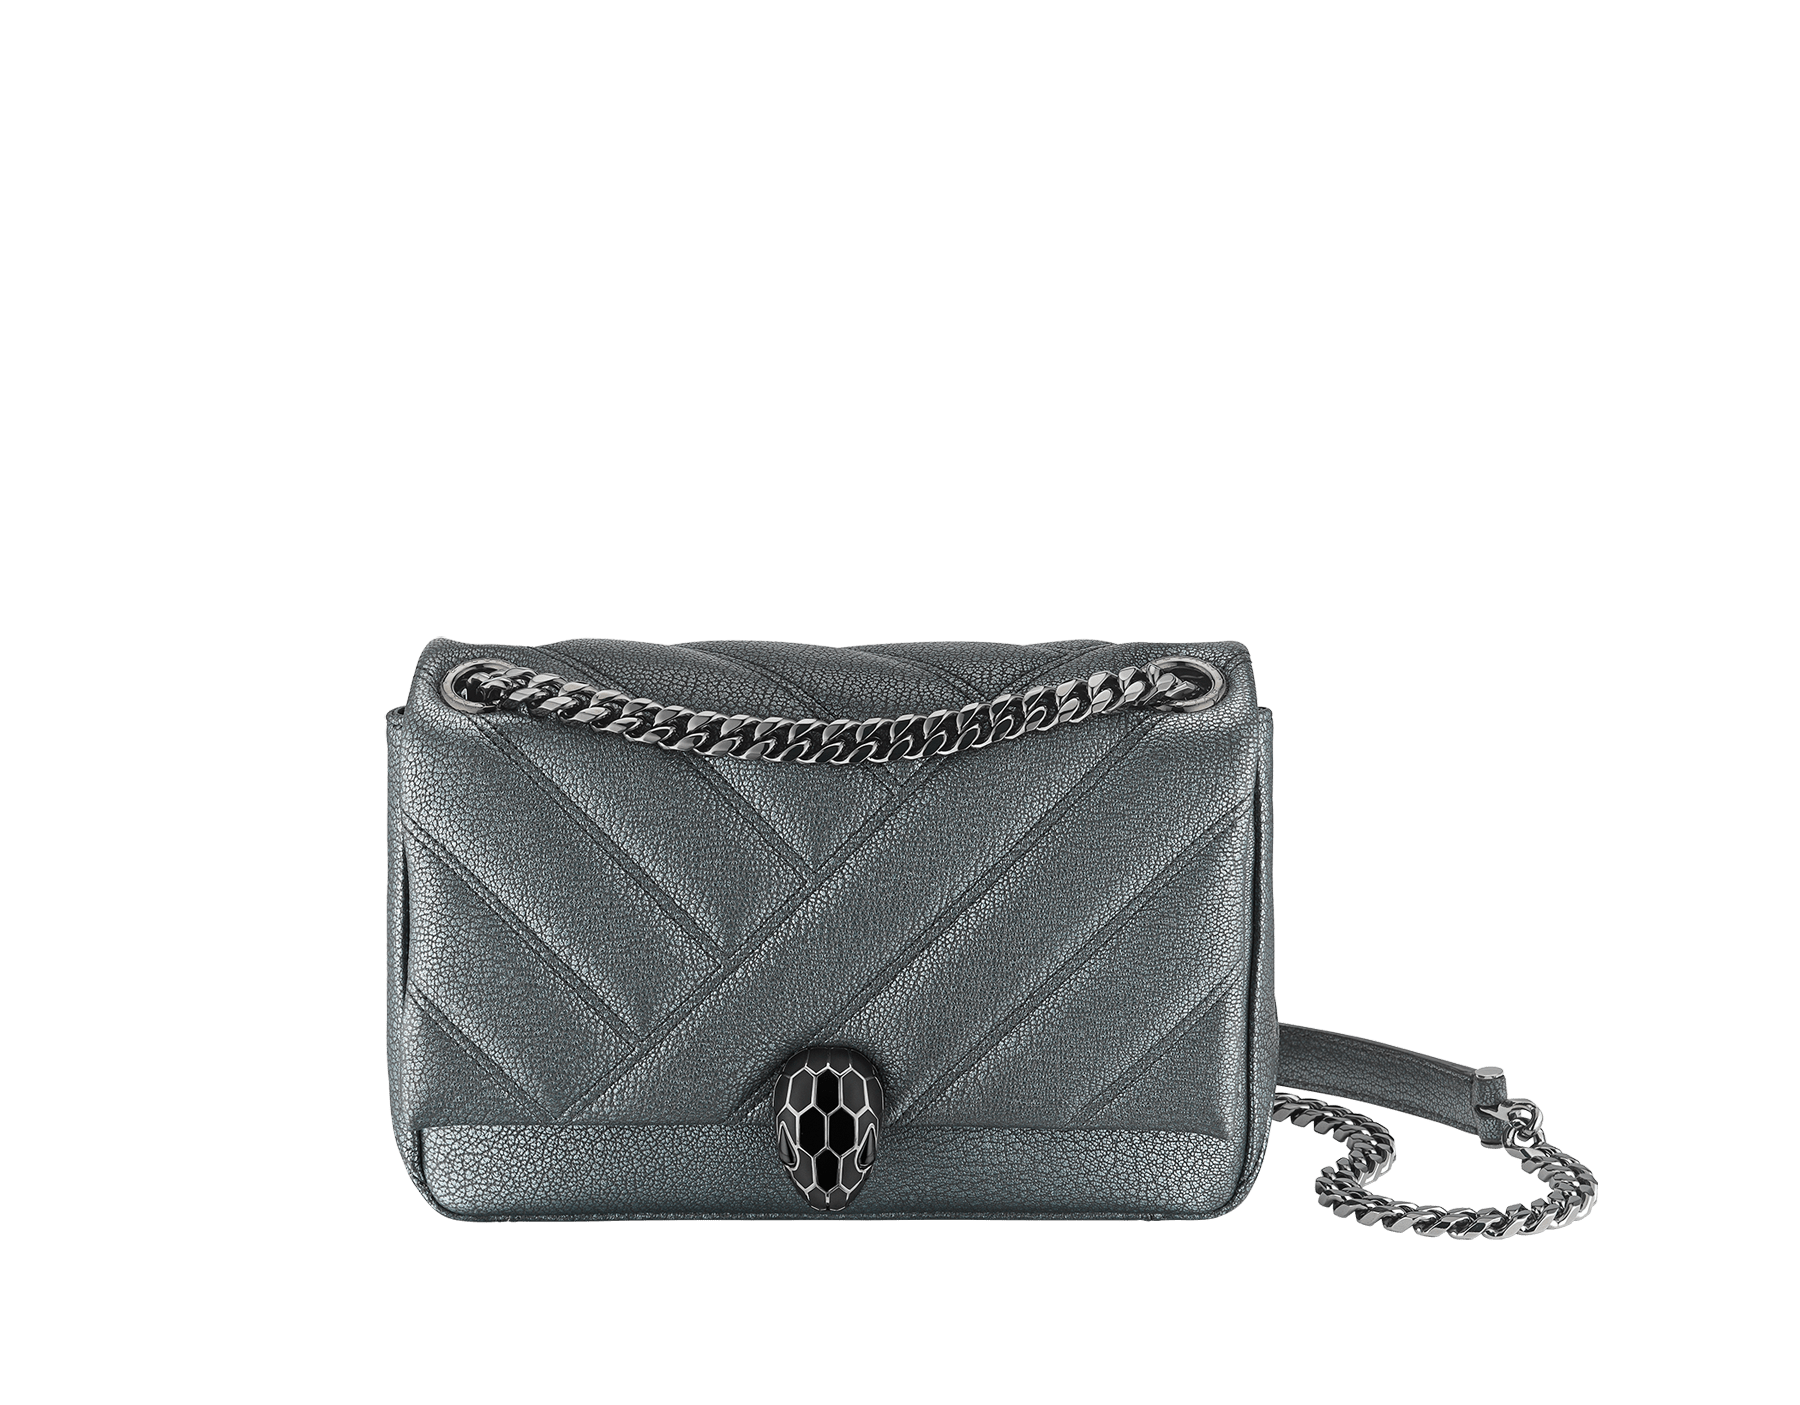 """Serpenti Cabochon"" shoulder bag in soft quilted white agate goatskin with a pearled, iridescent effect and a graphic motif. Brass palladium plated tempting snakehead closure in matte black and shiny white enamel and black onyx eyes. 1094-PSL image 1"